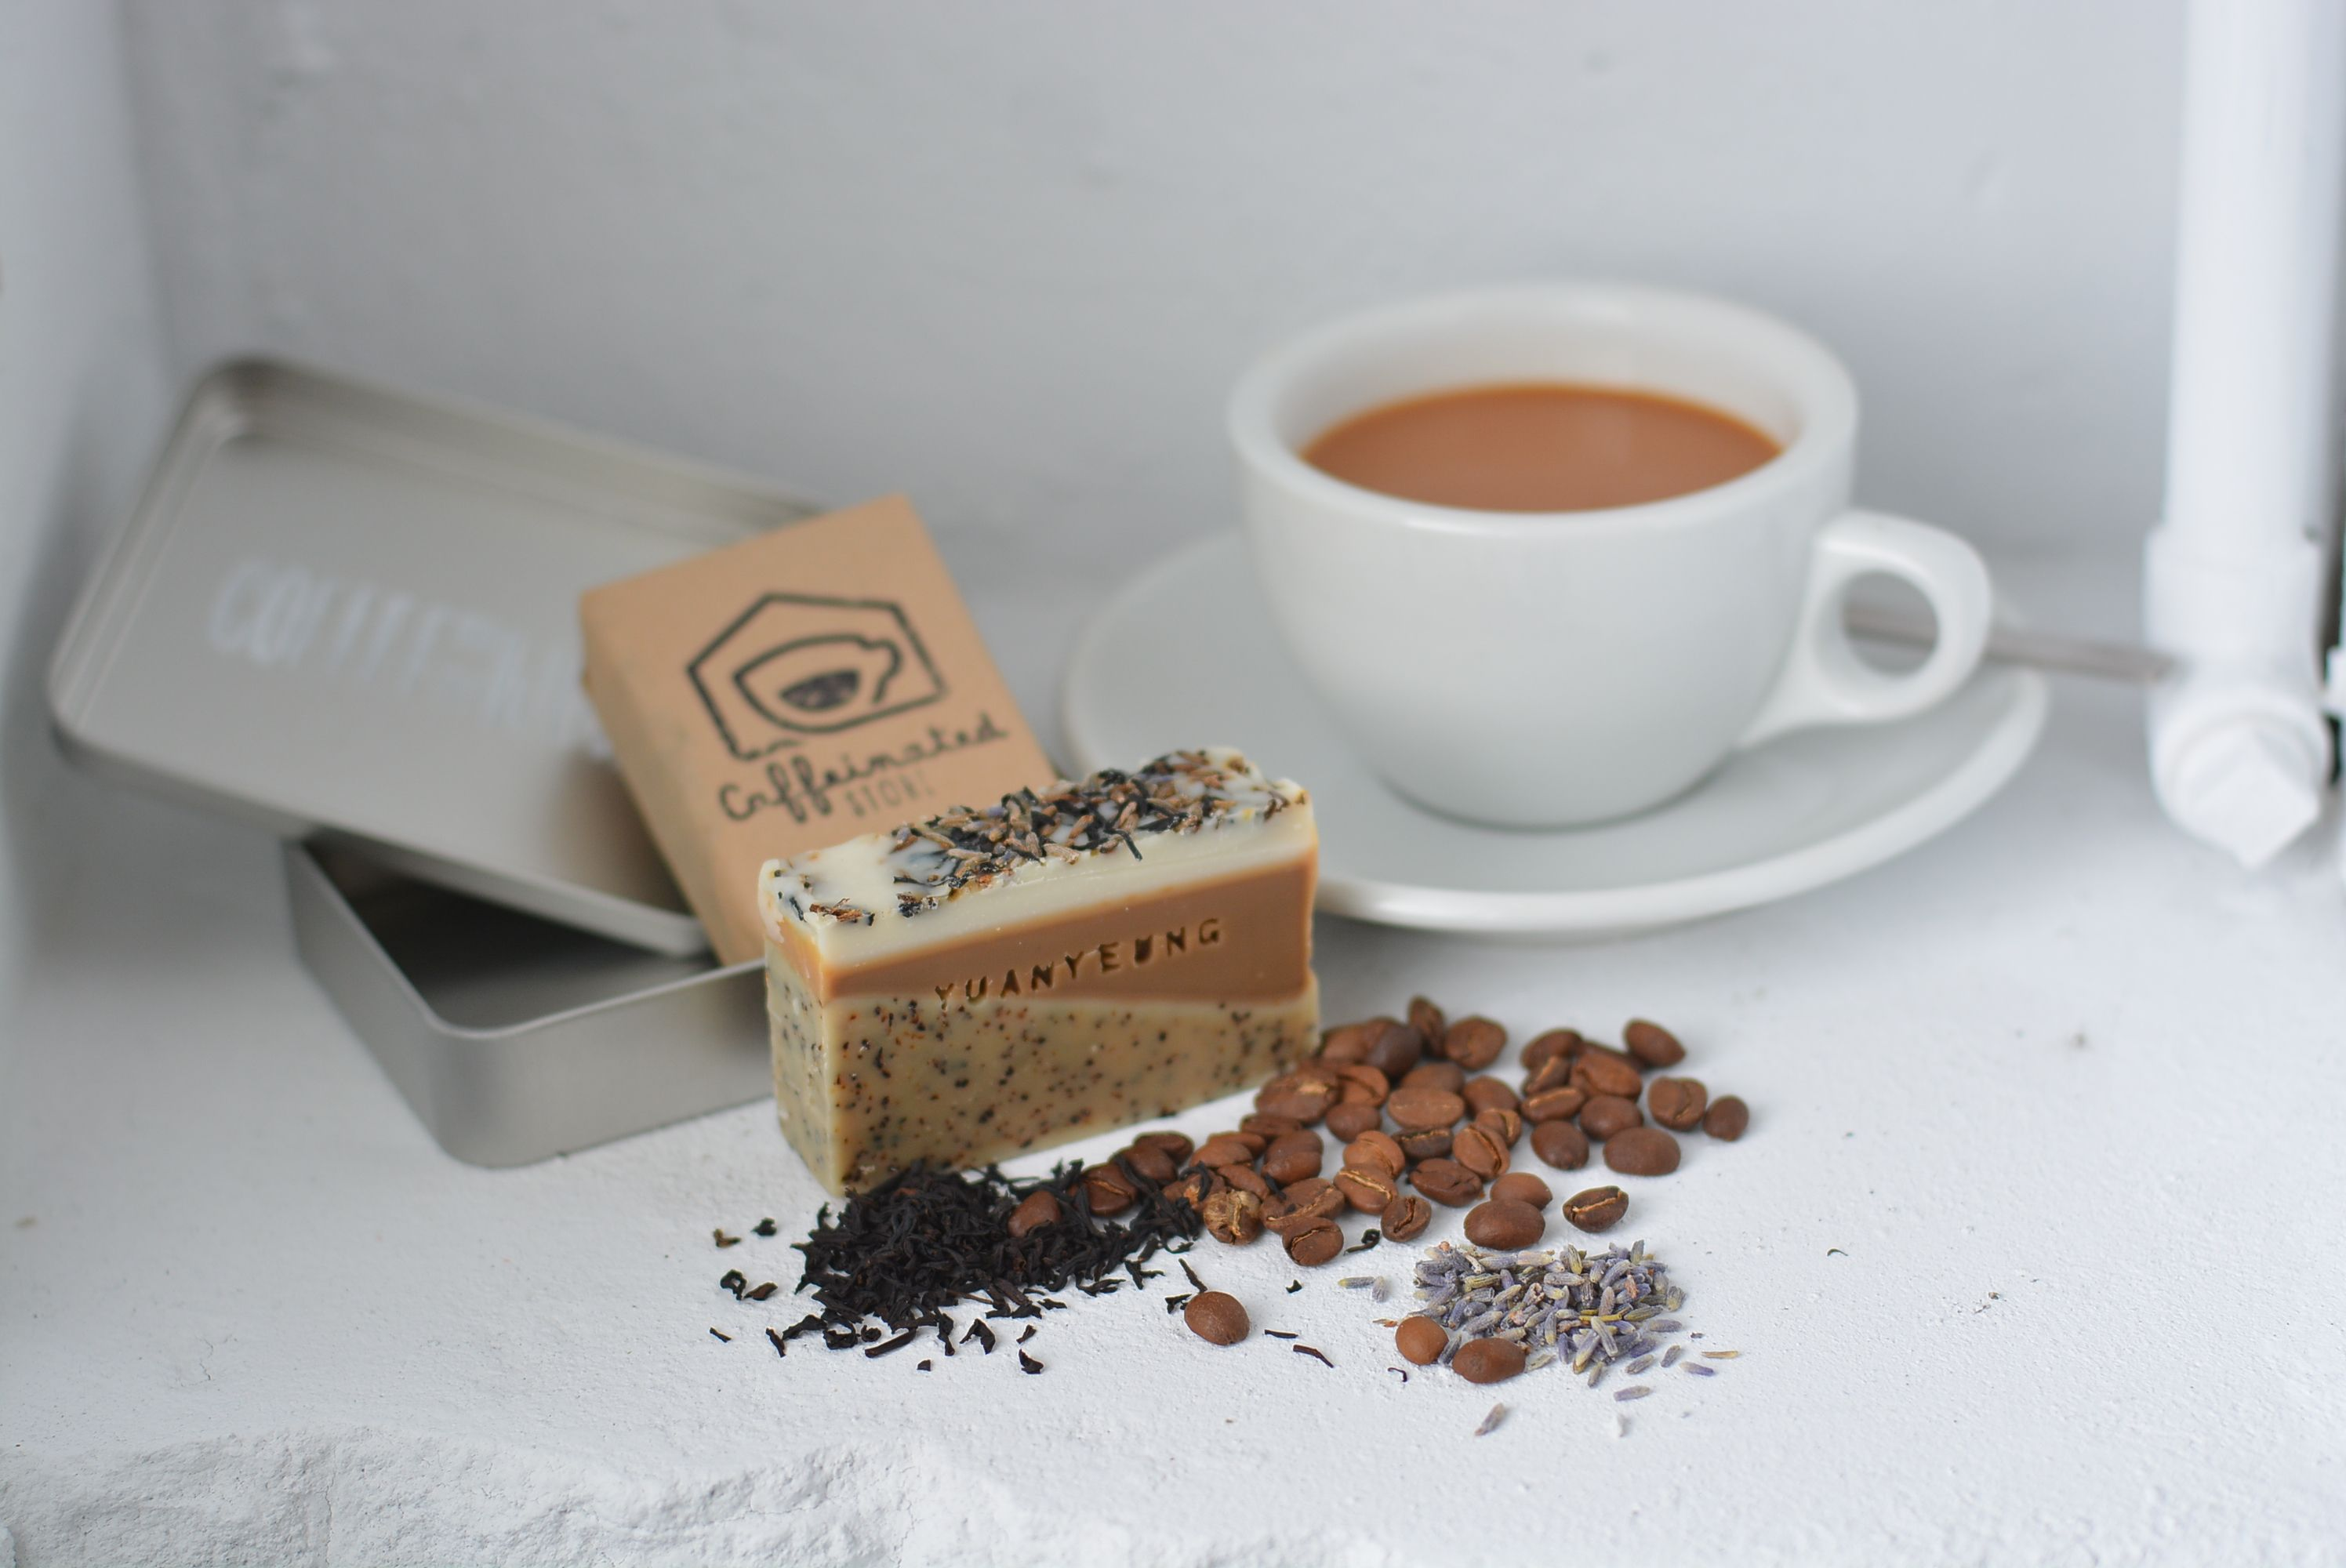 Handcrafted SoapCOFFEE OF THE WORLD 01 Chocolate